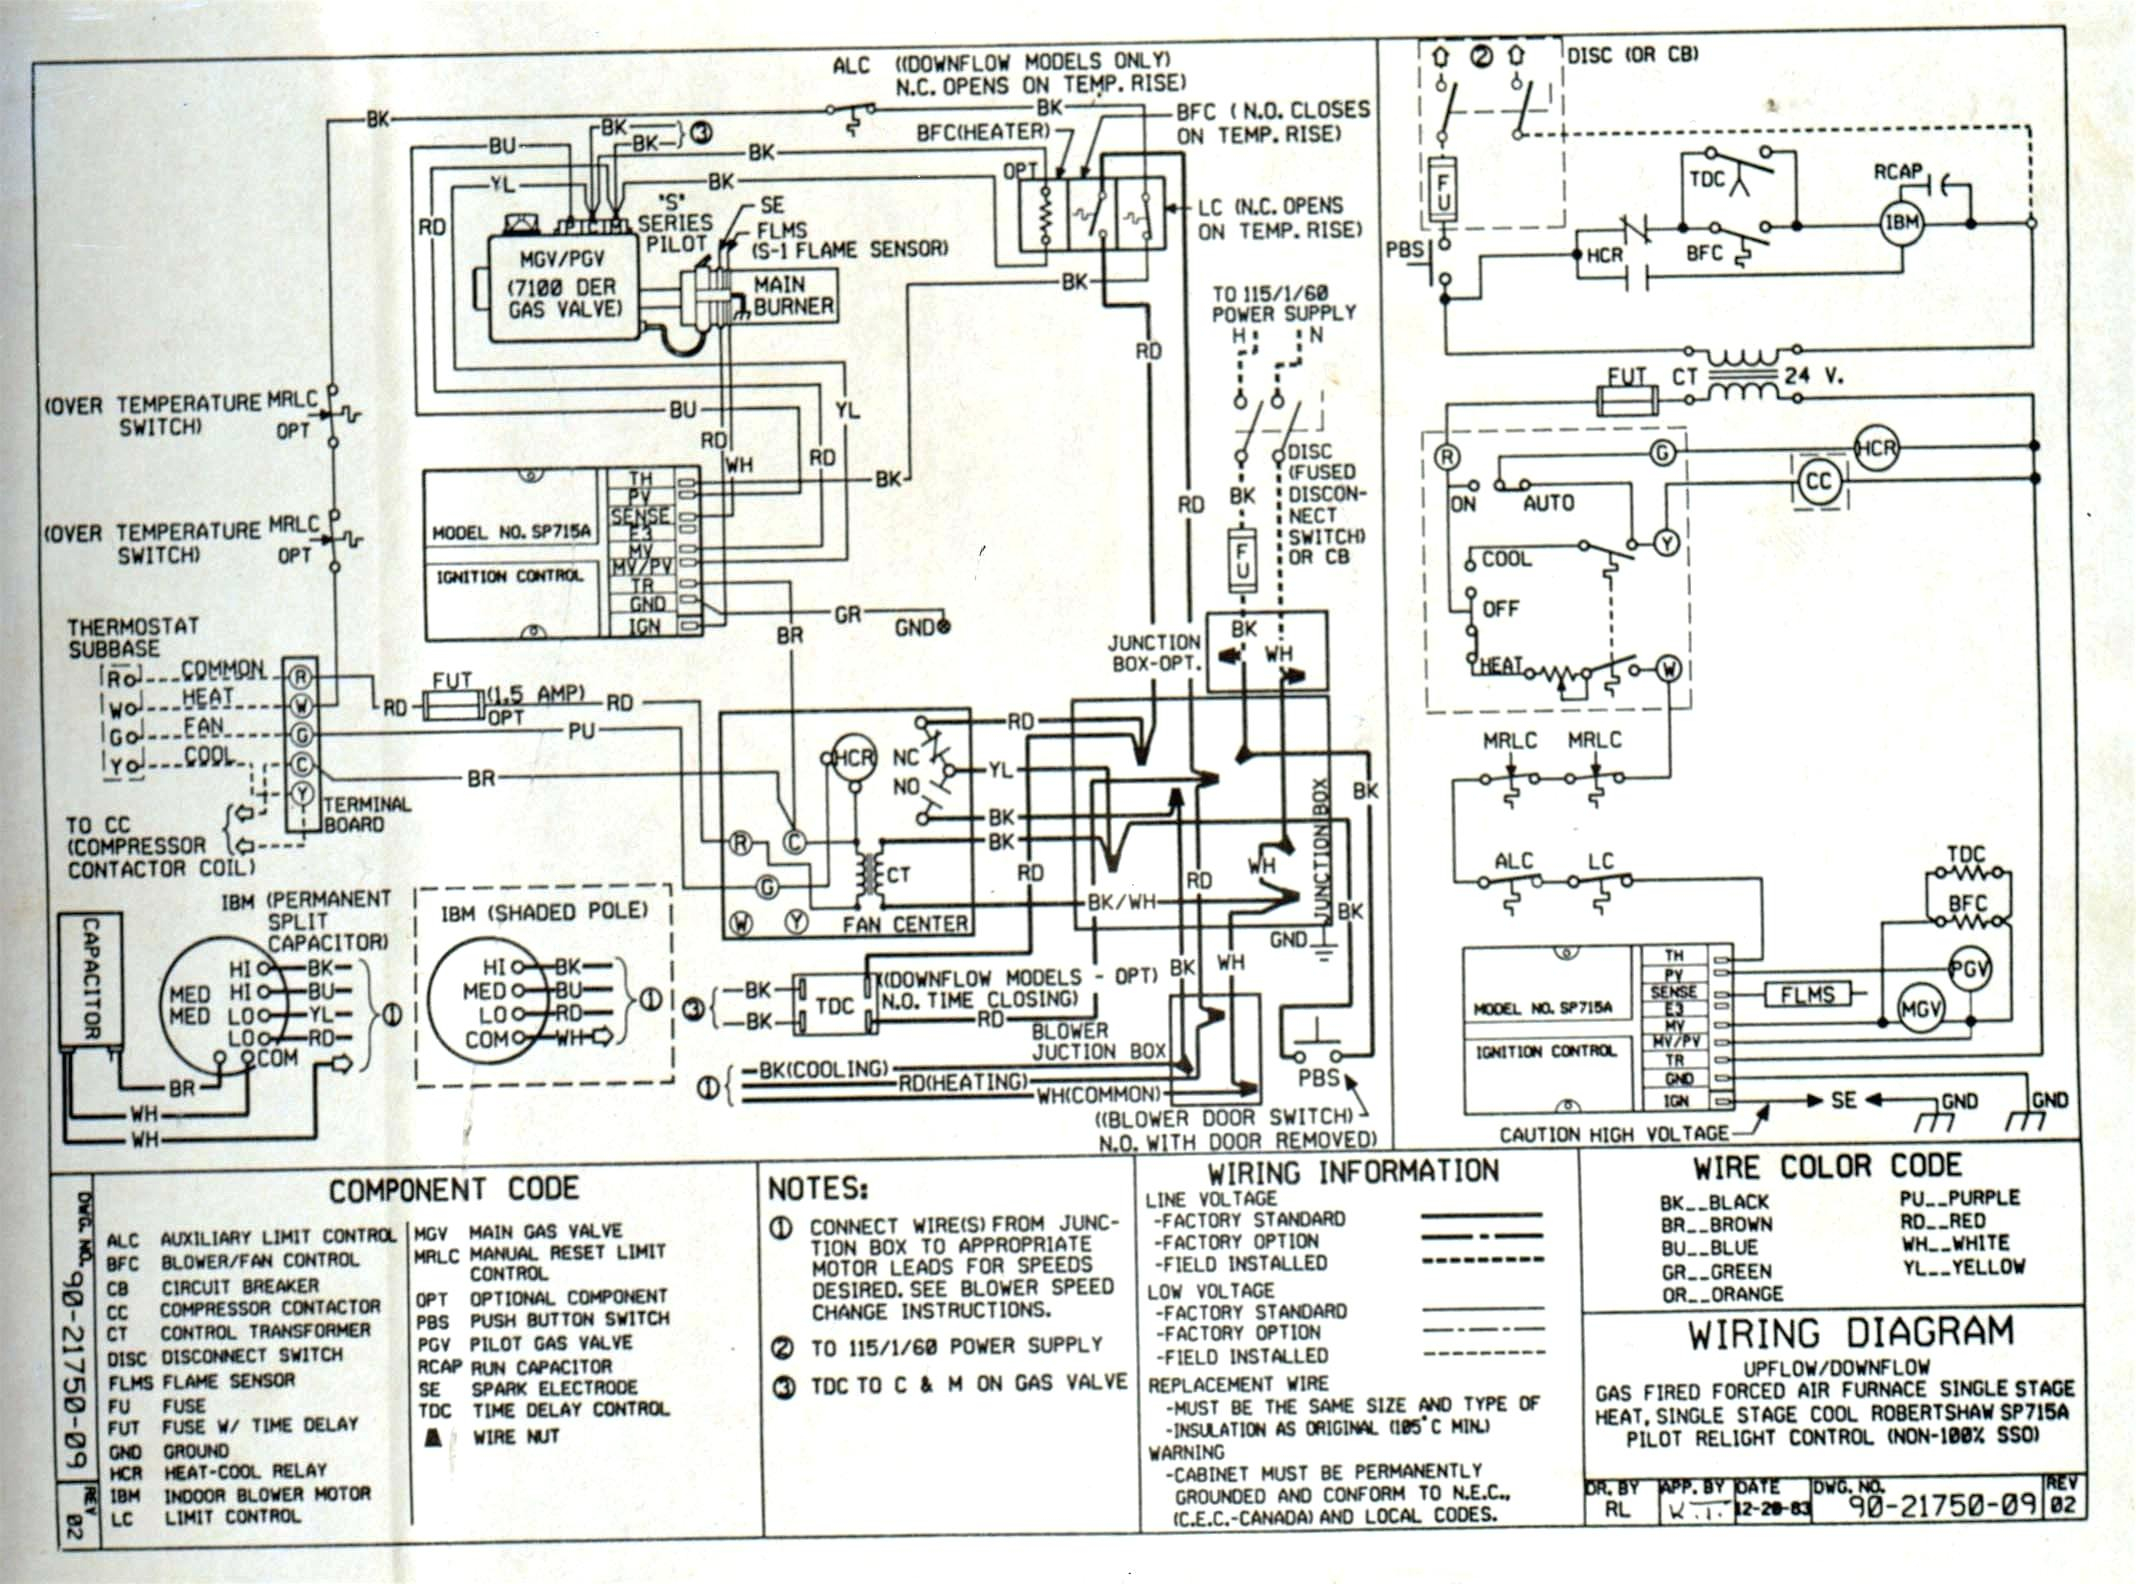 asco series 300 wiring diagram Collection-Asco Series 300 Wiring Diagram Luxury Hvac thermostat Wiring Diagram Carrier Wonderful Advent Air 12-f